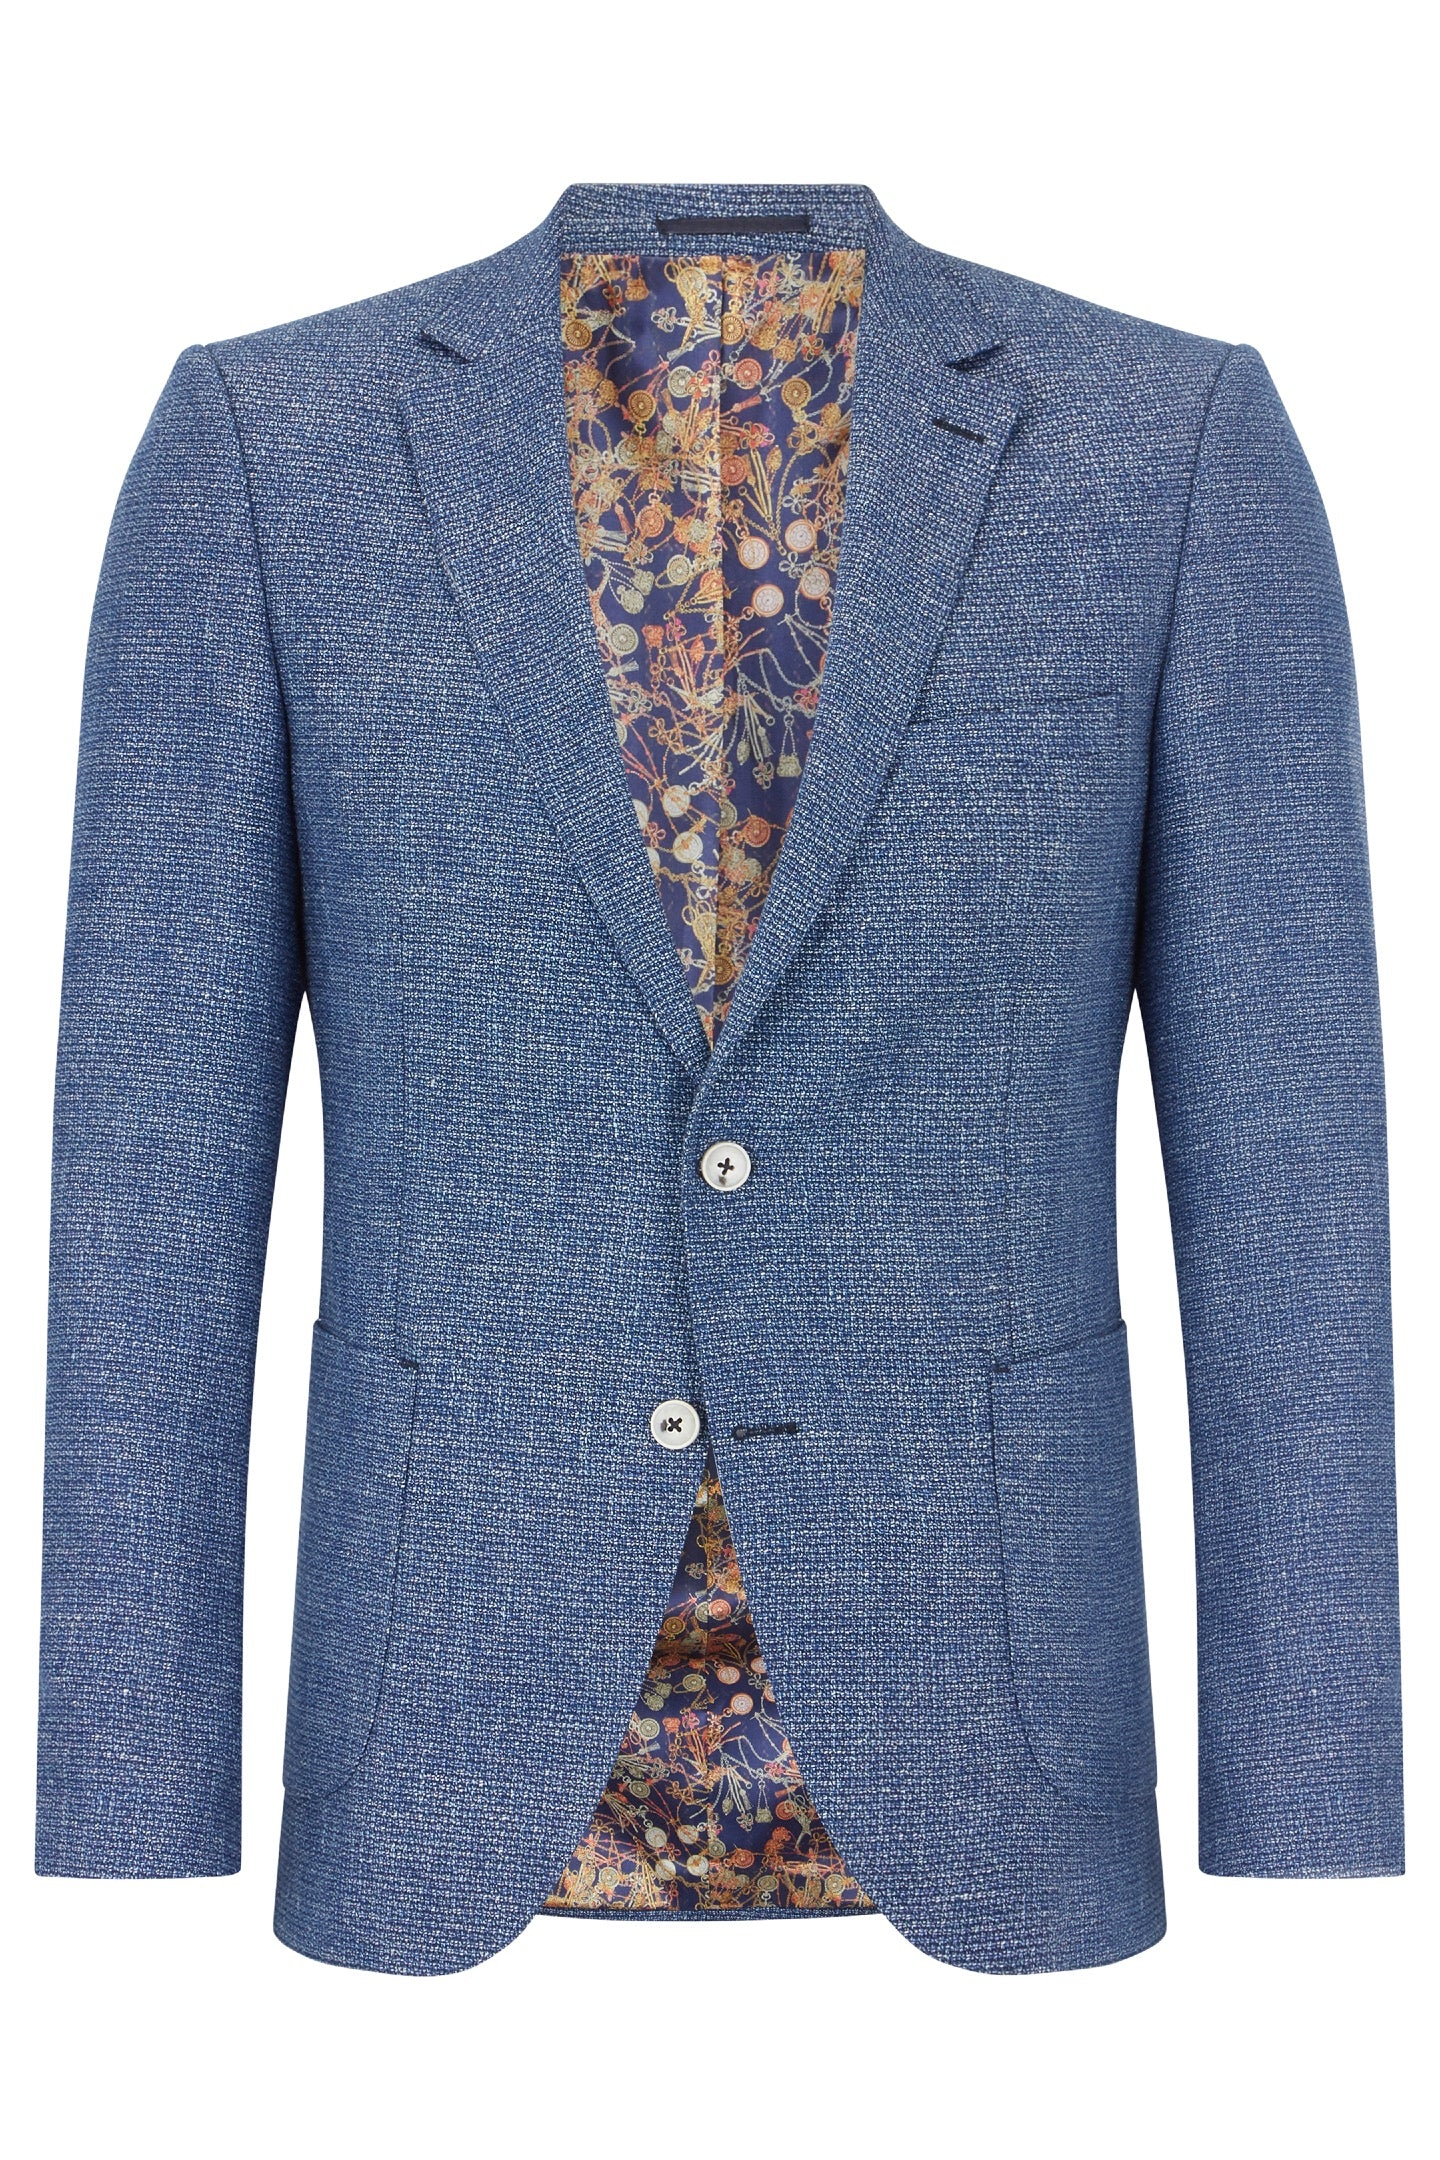 Chris Blue Blazer